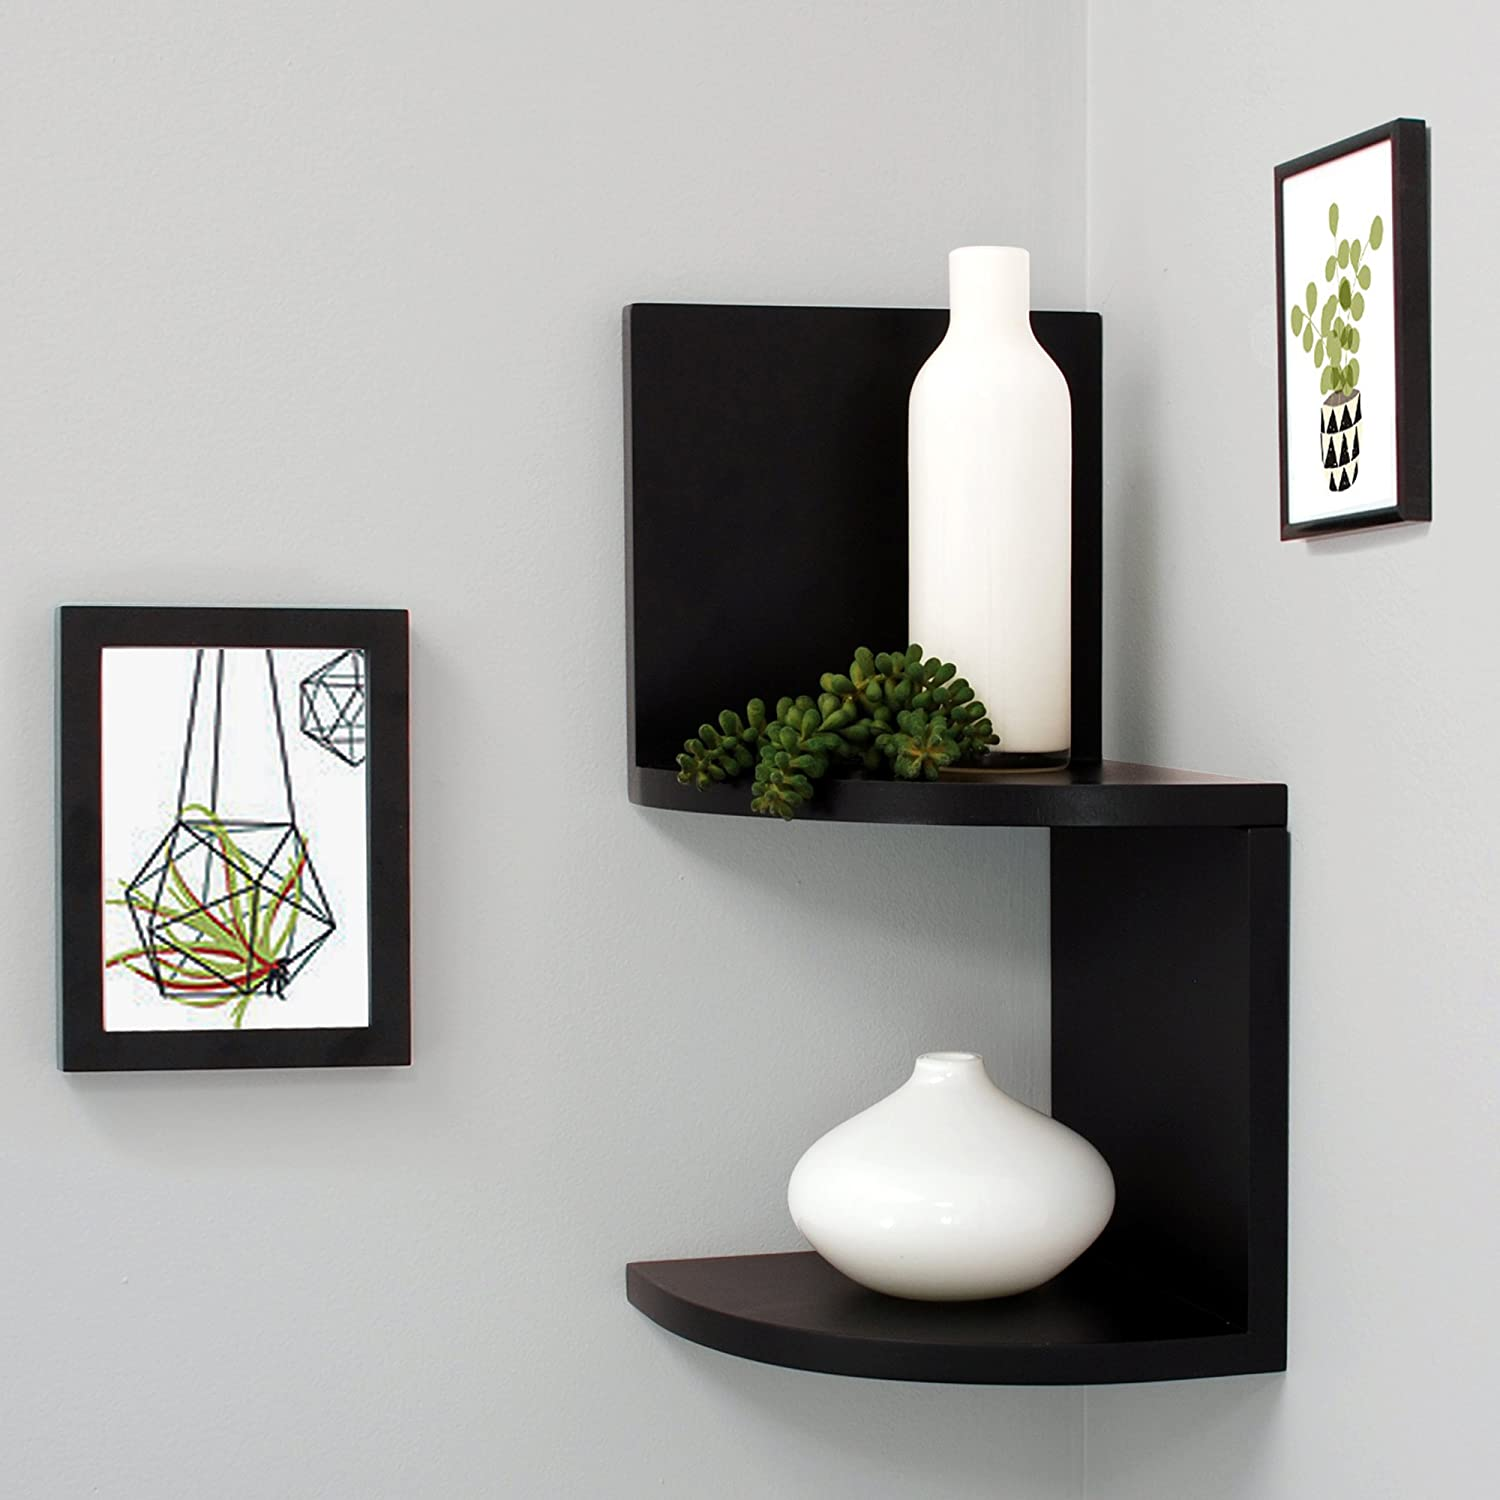 Design Corner Wall Shelves amazon com kiera grace priva 2 tier corner shelf 7 75 inch by per black home kitchen